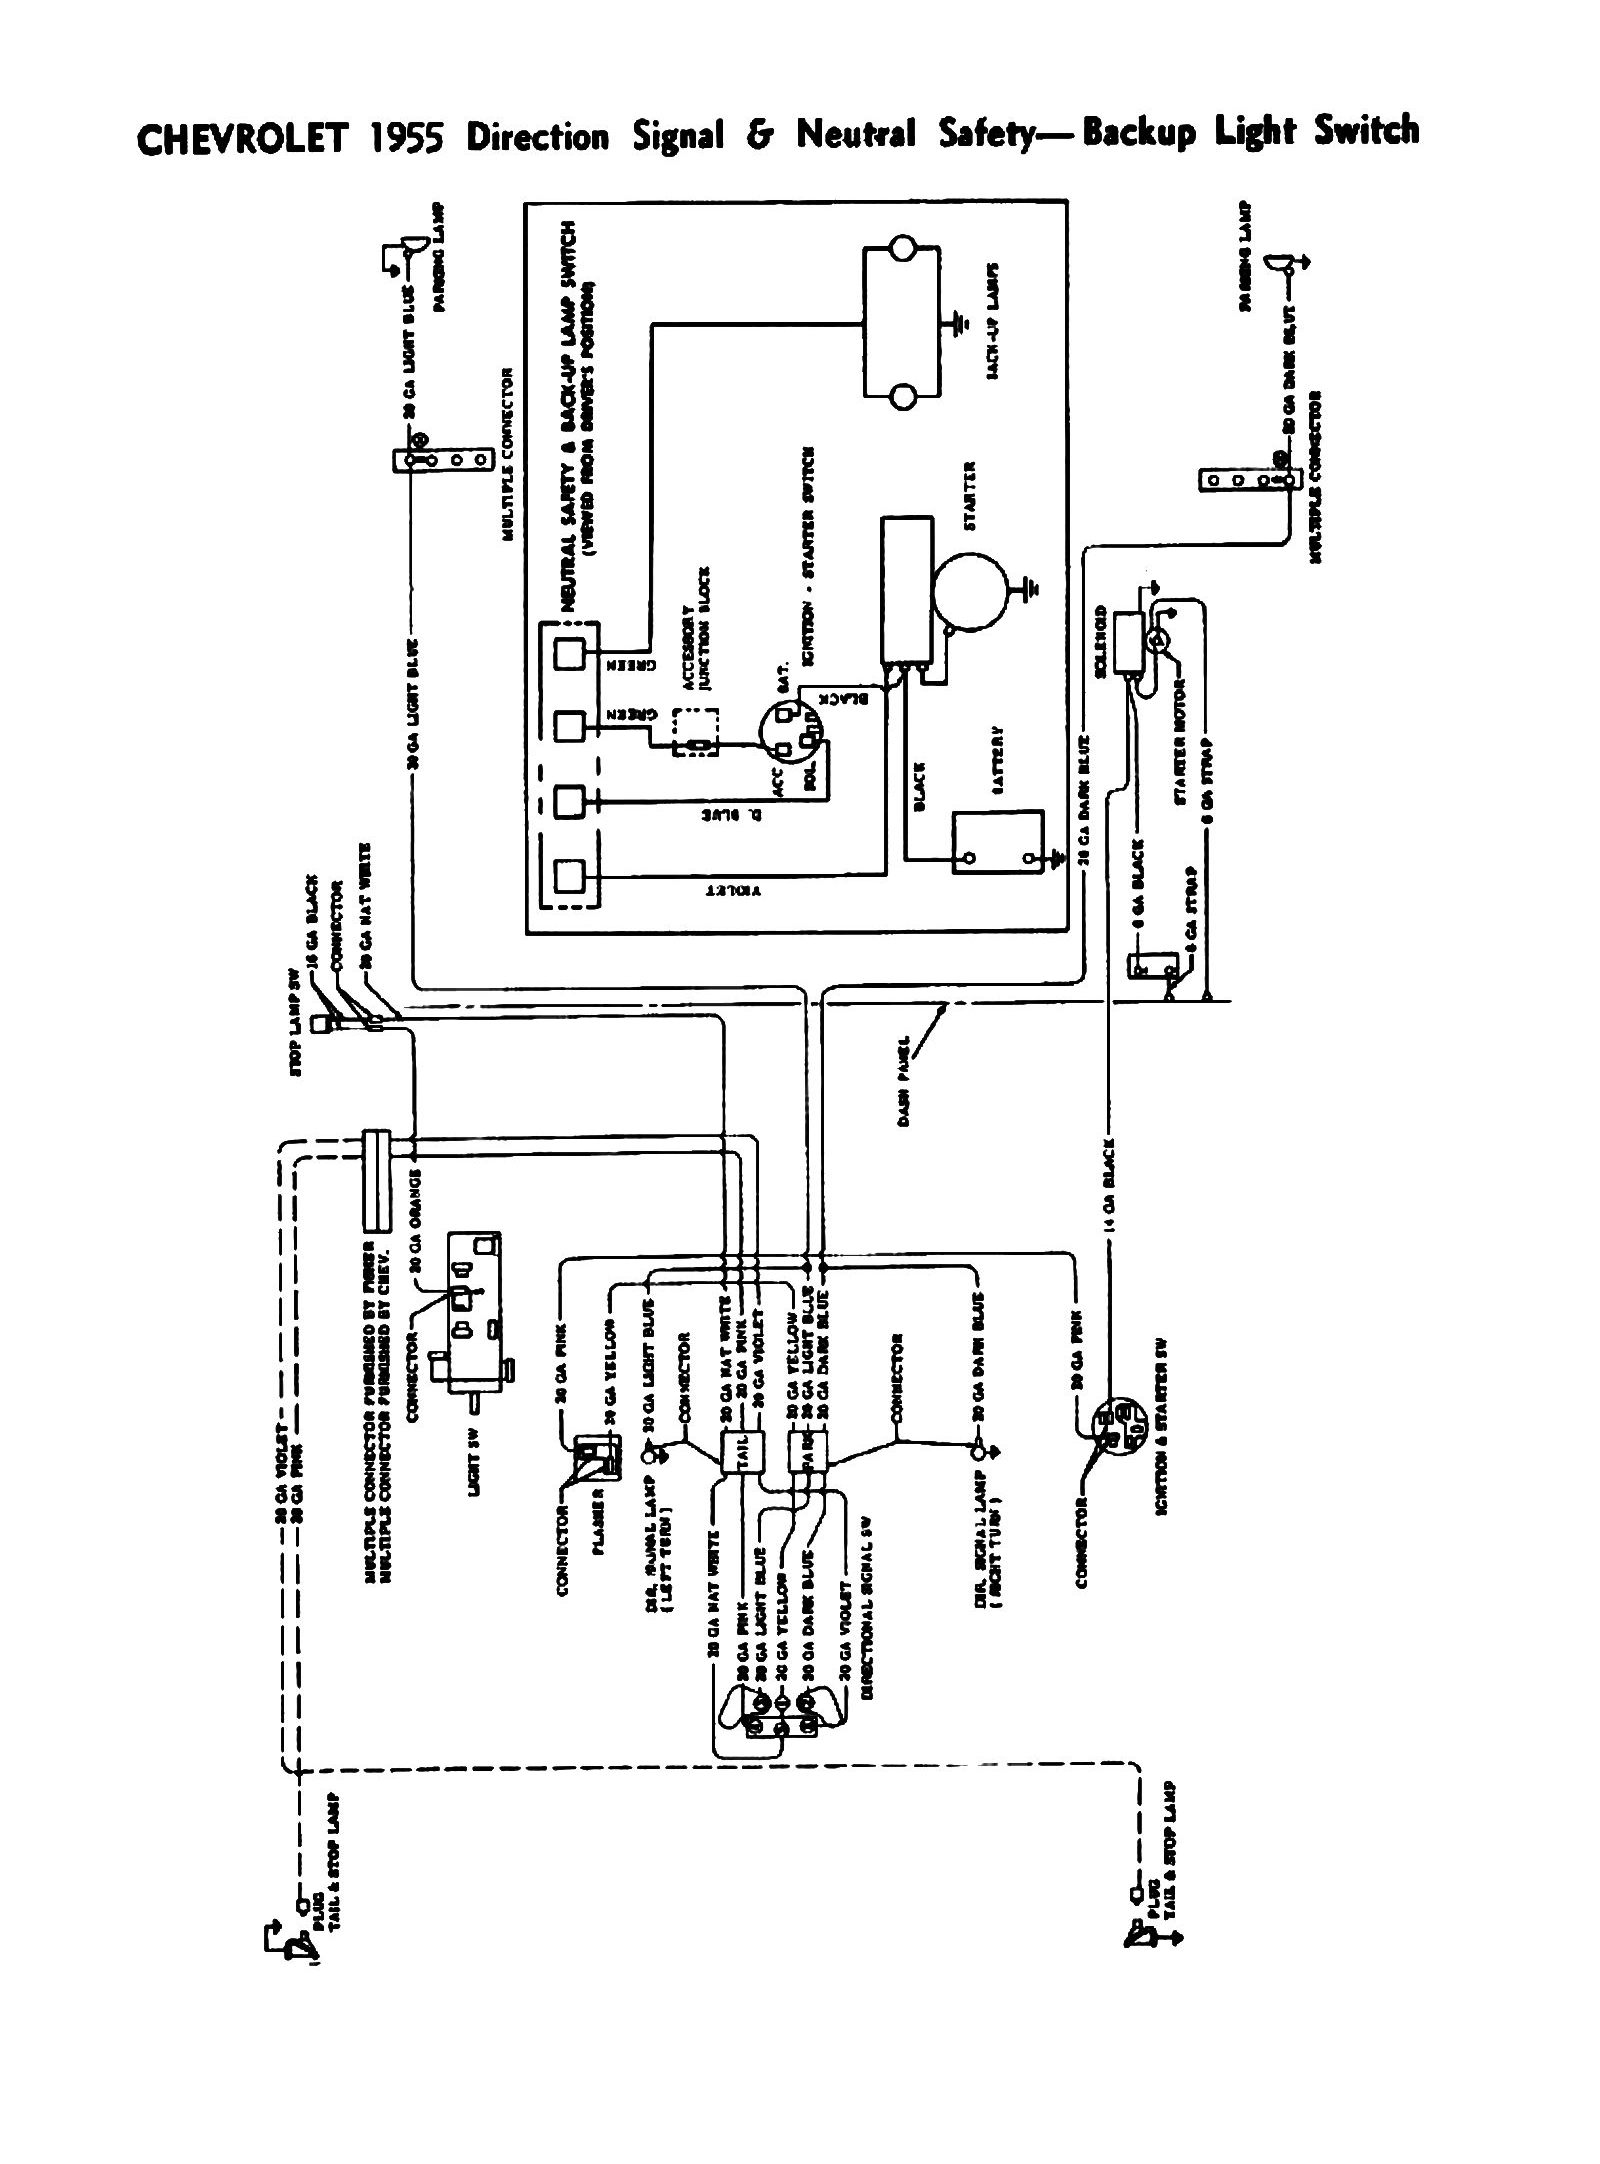 Chevy Blazer Turn Signals Wiring Schematic Just Diagram 98 S10 55 Signal Auto Electrical Flasher